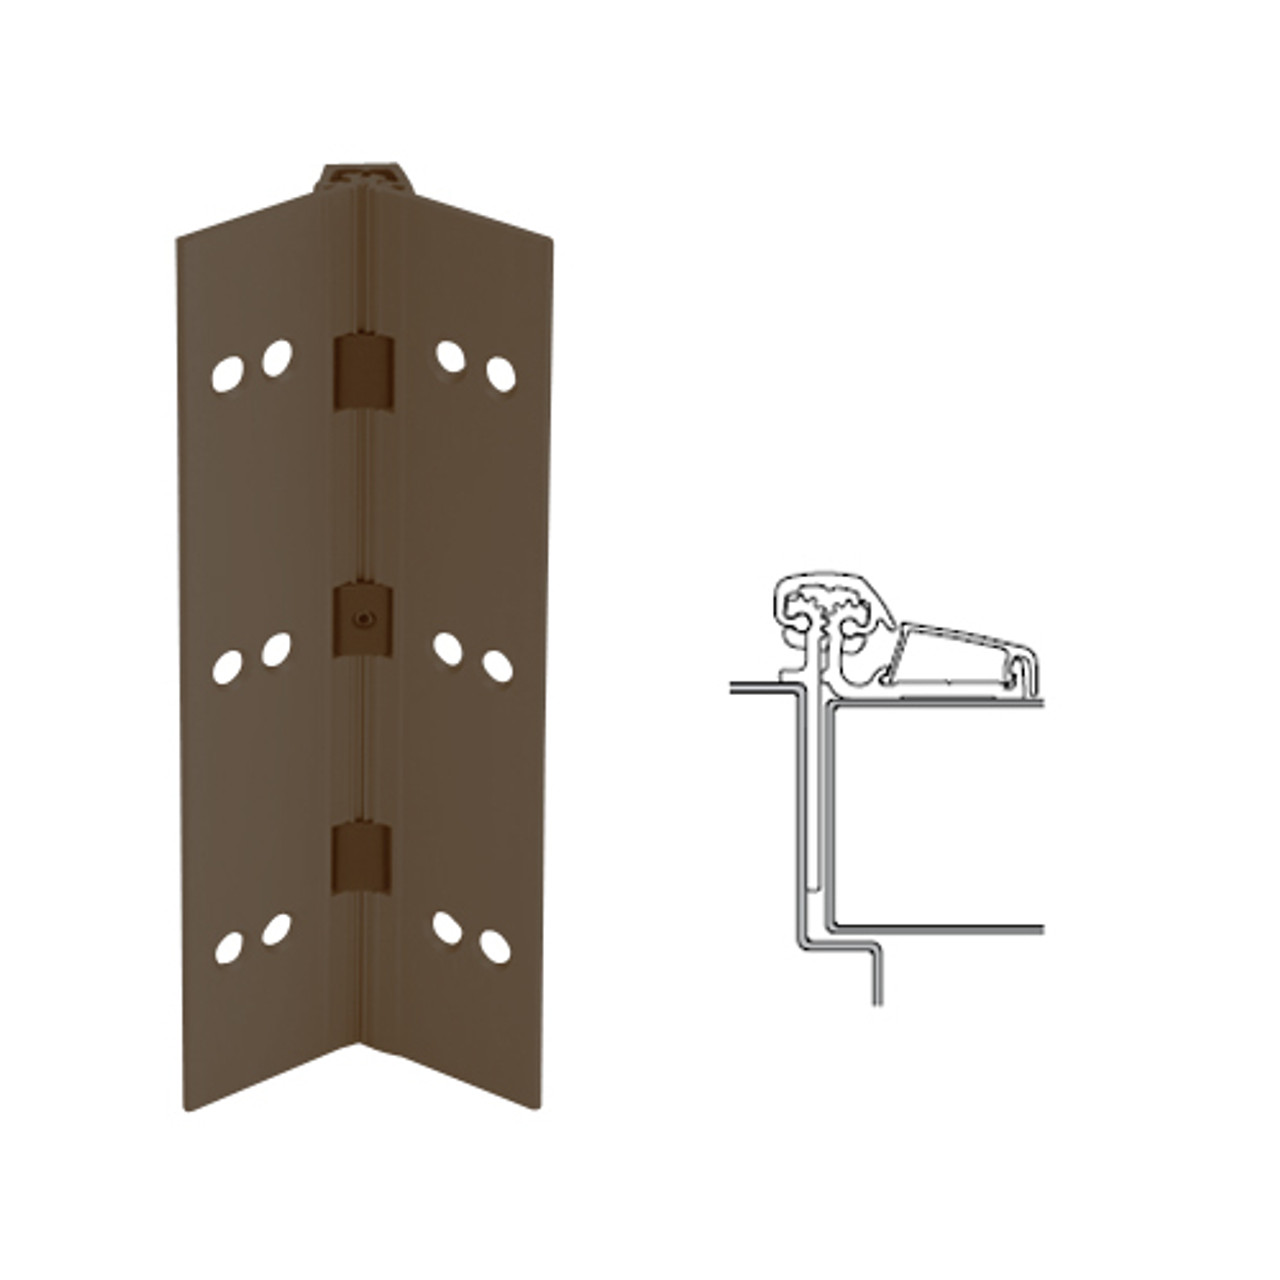 053XY-313AN-120-TEKWD IVES Adjustable Half Surface Continuous Geared Hinges with Wood Screws in Dark Bronze Anodized